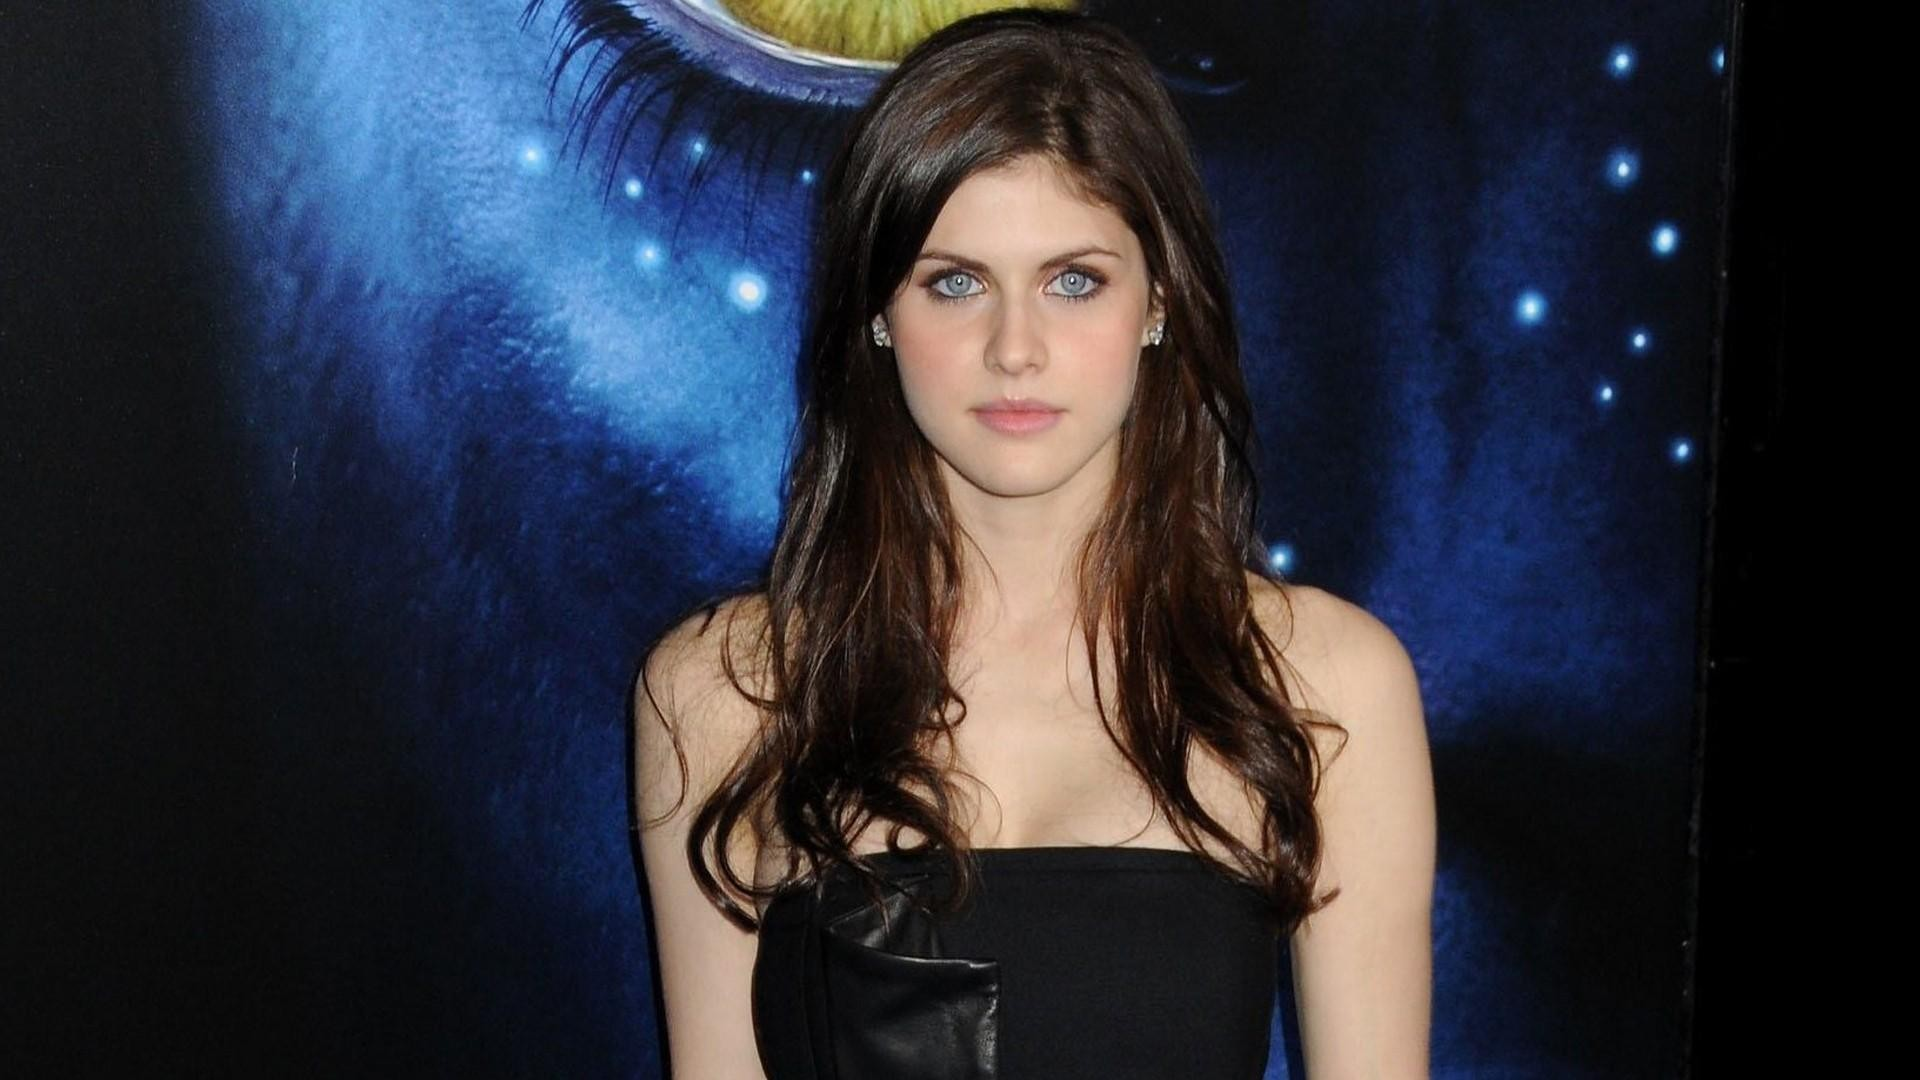 Alexandra Daddario Wallpaper Download Free Amazing Hd Wallpapers